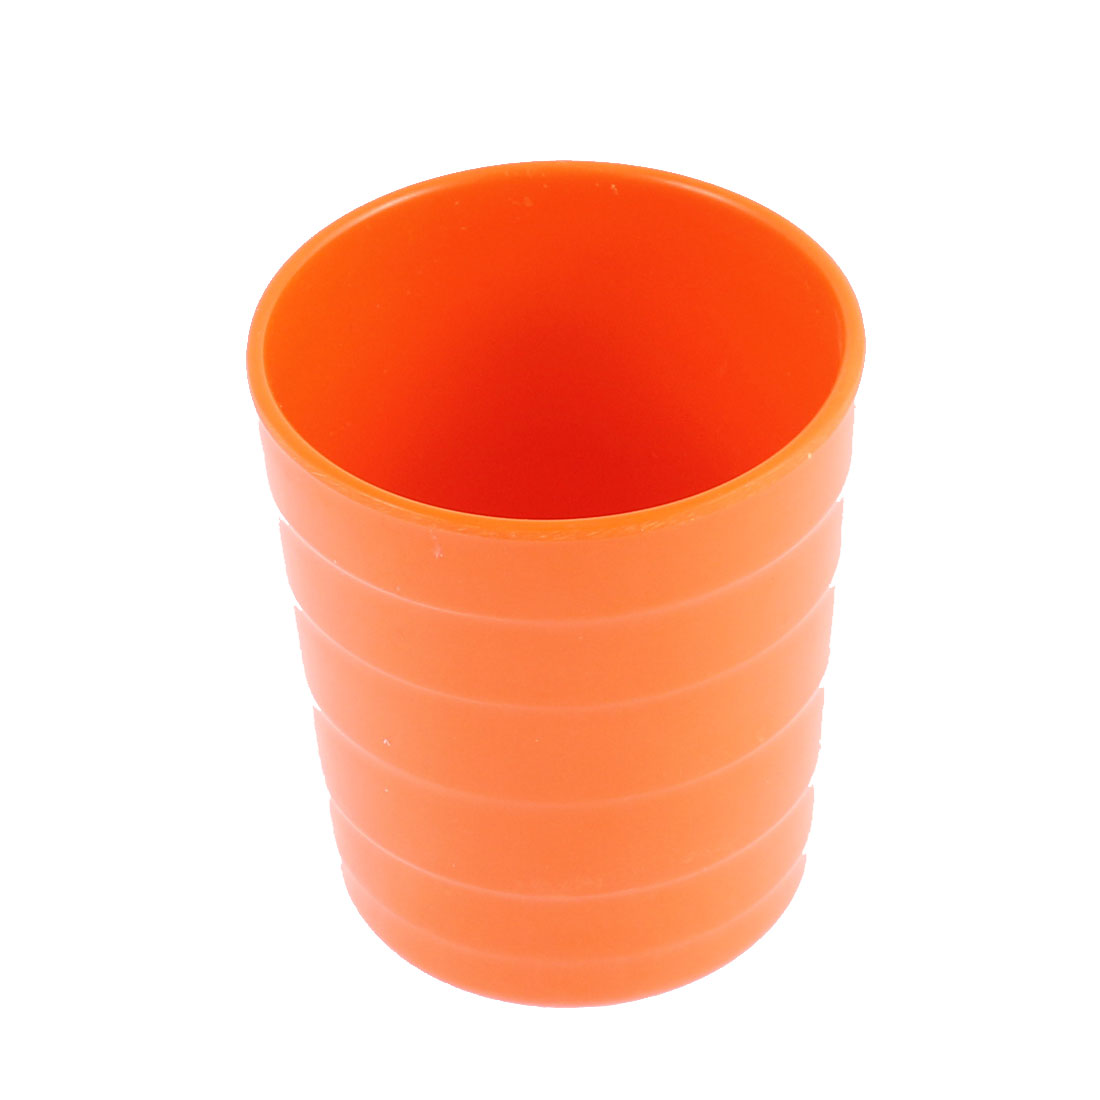 Home Restaurant Plastic Cylinder Shaped Water Tea Drinking Cup Orangered 8cm Height